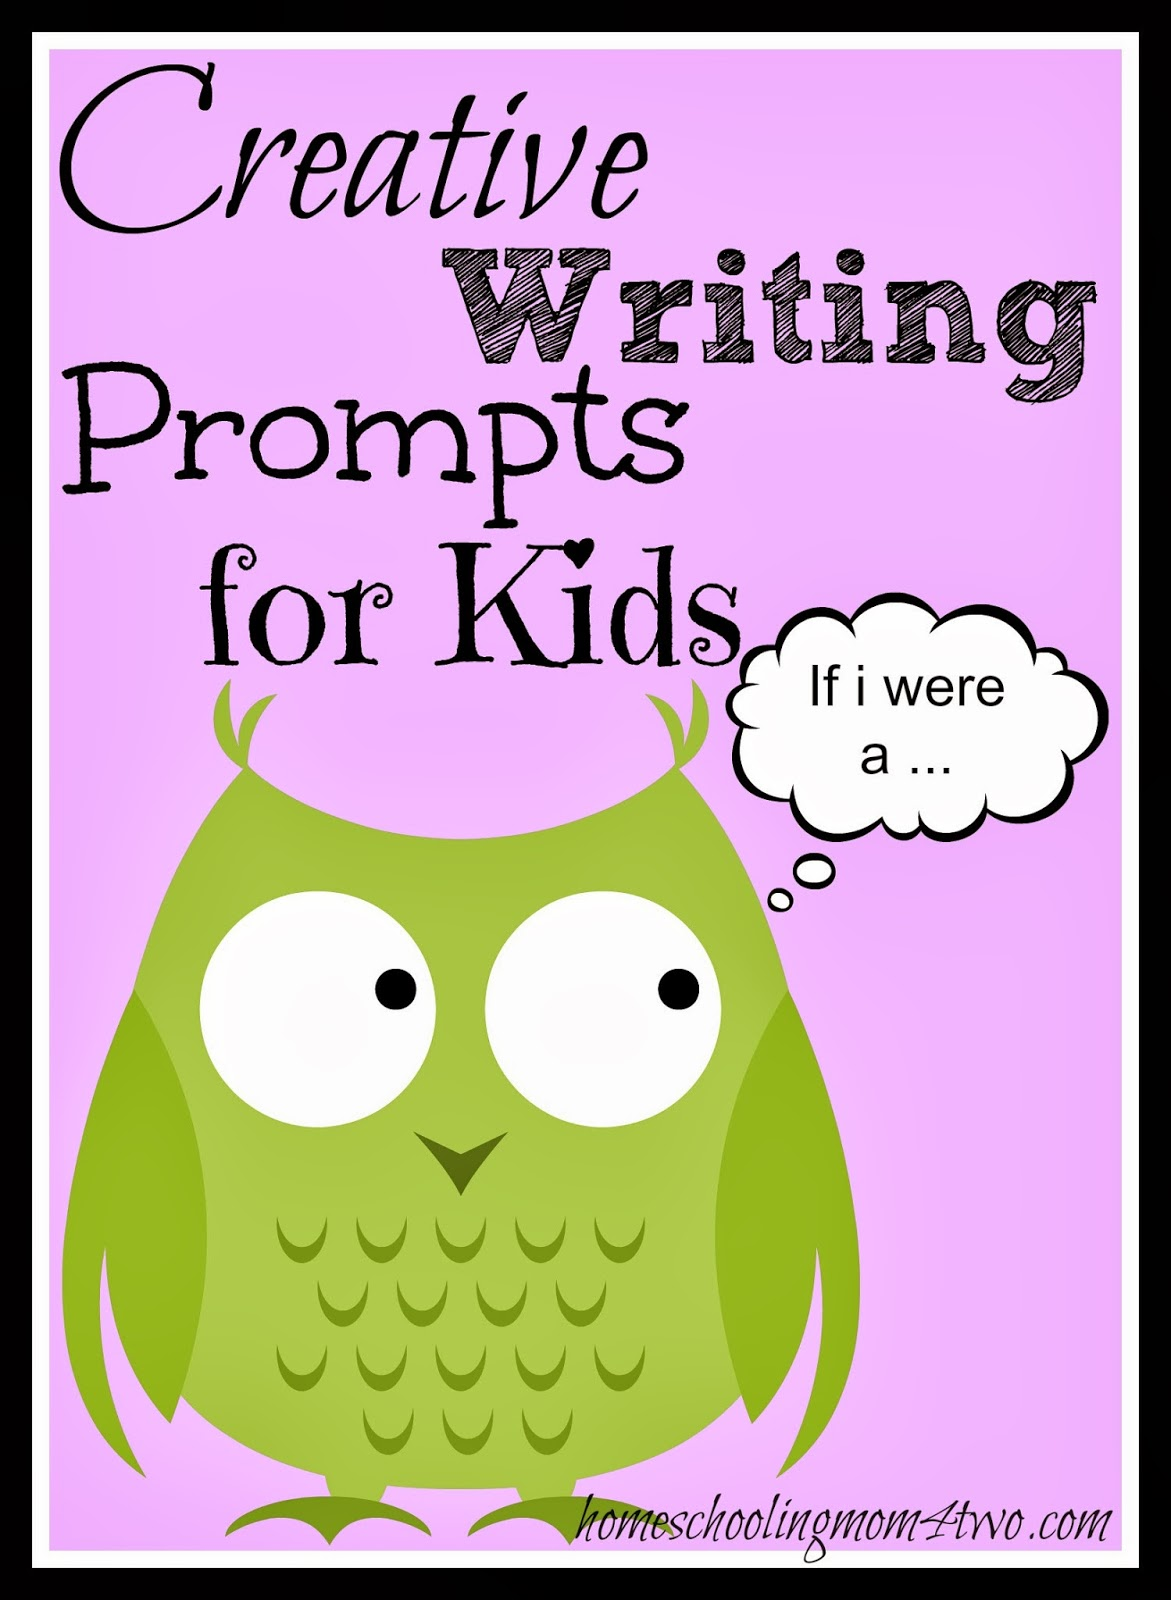 FREE Creative Writing Prompts for Kids